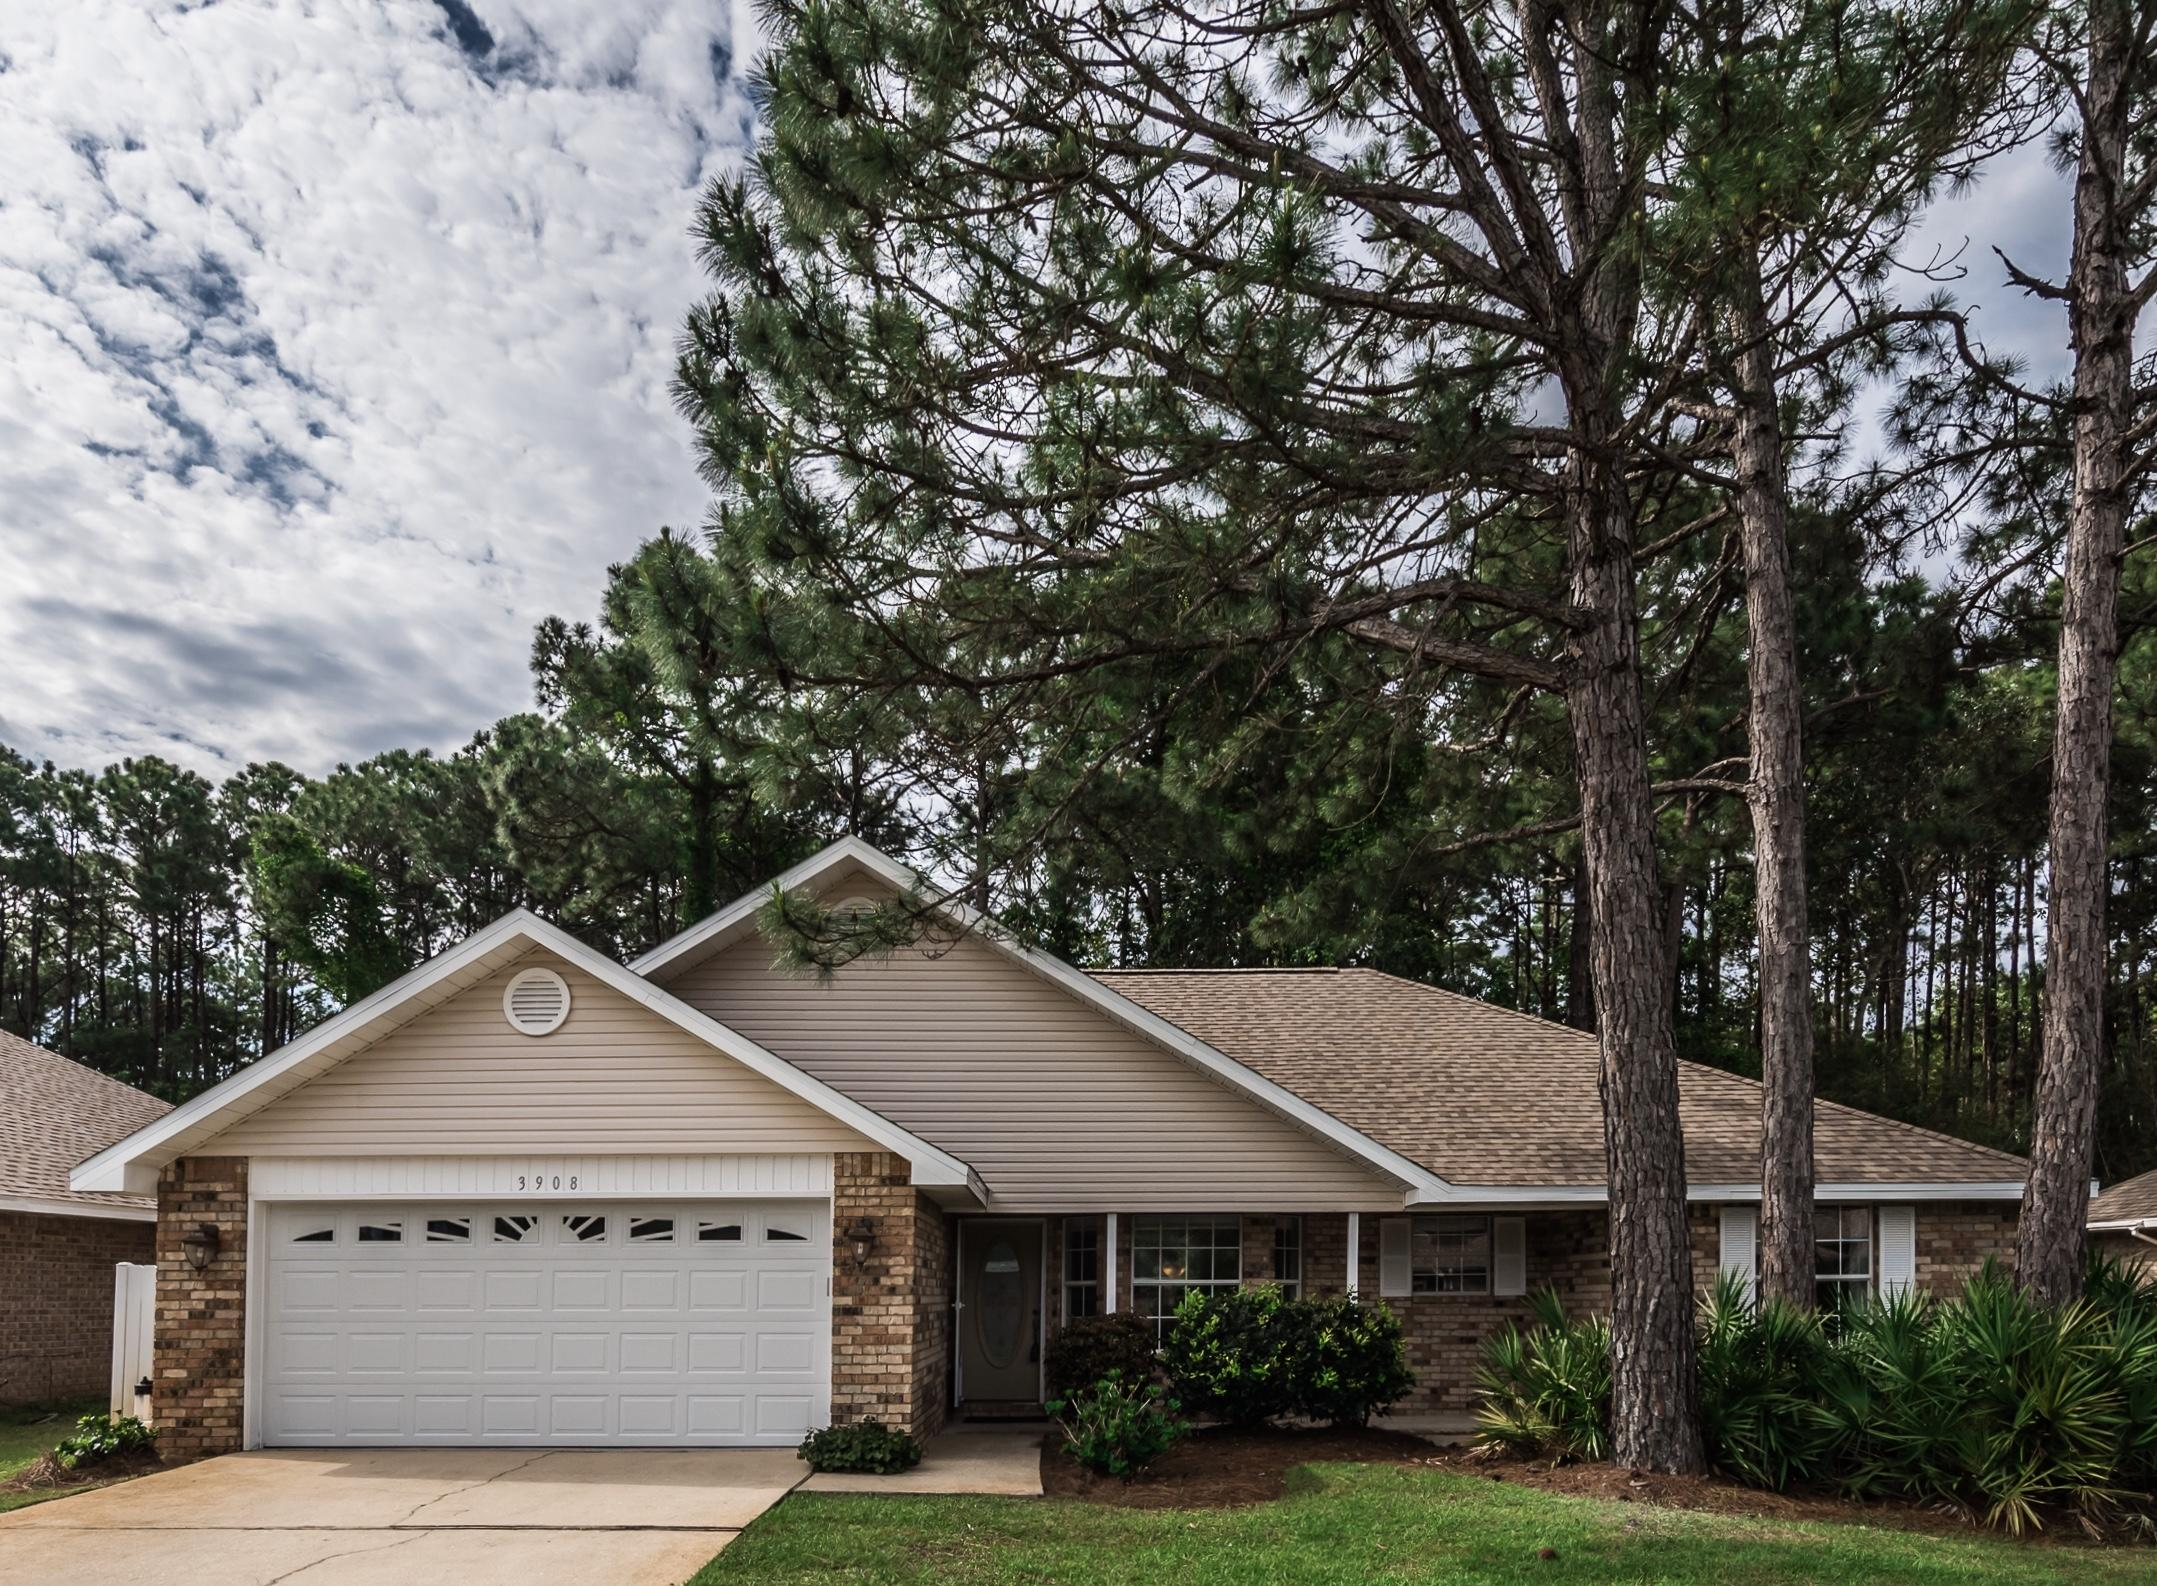 Photo of home for sale at 3908 Mesa, Destin FL